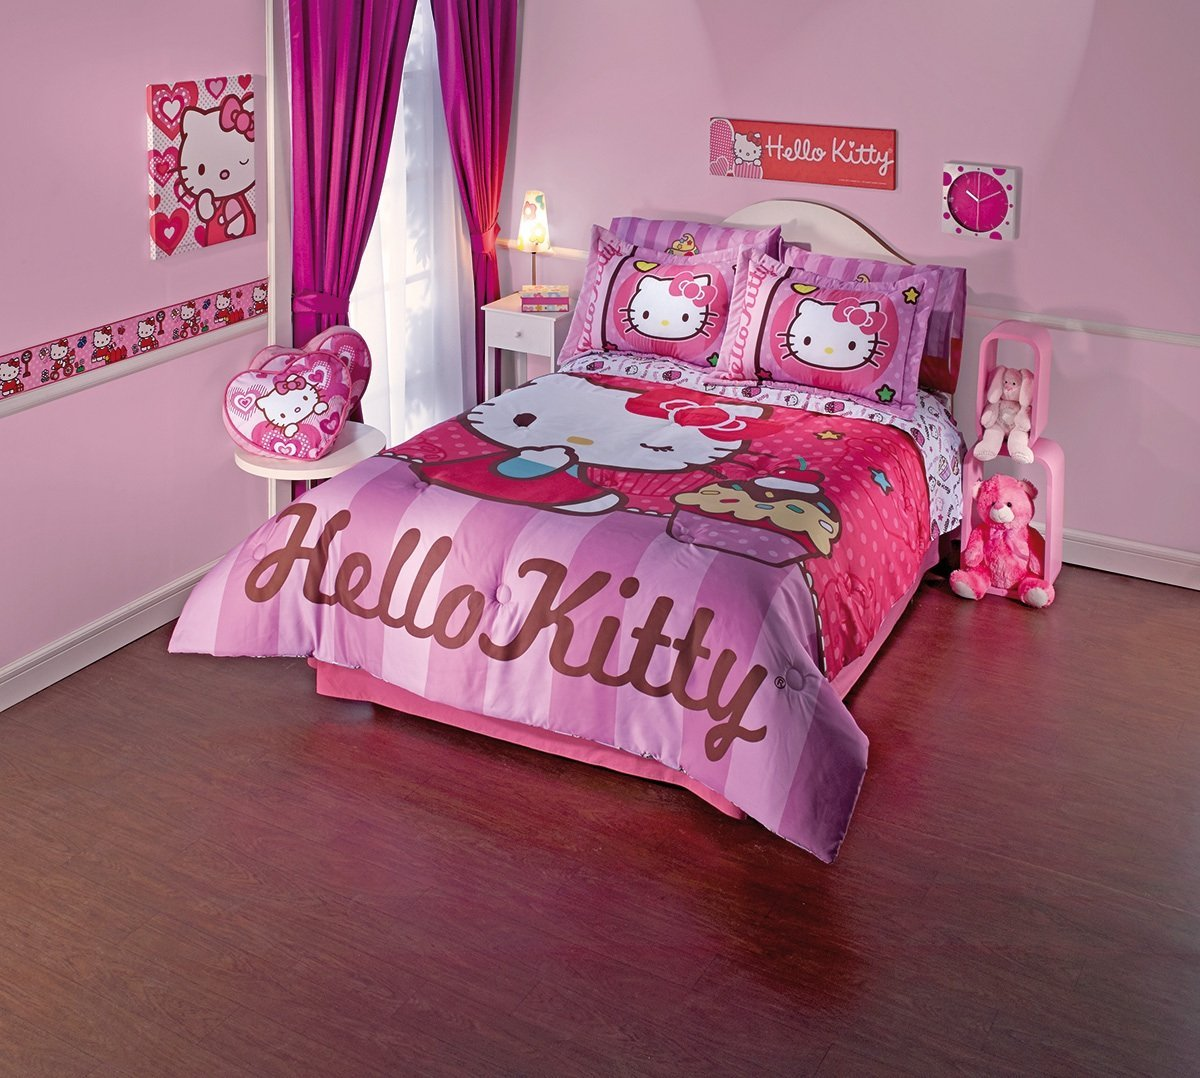 Pink hello kitty bedsheet - New Hello Kitty Comforter Sheet Set Full Size